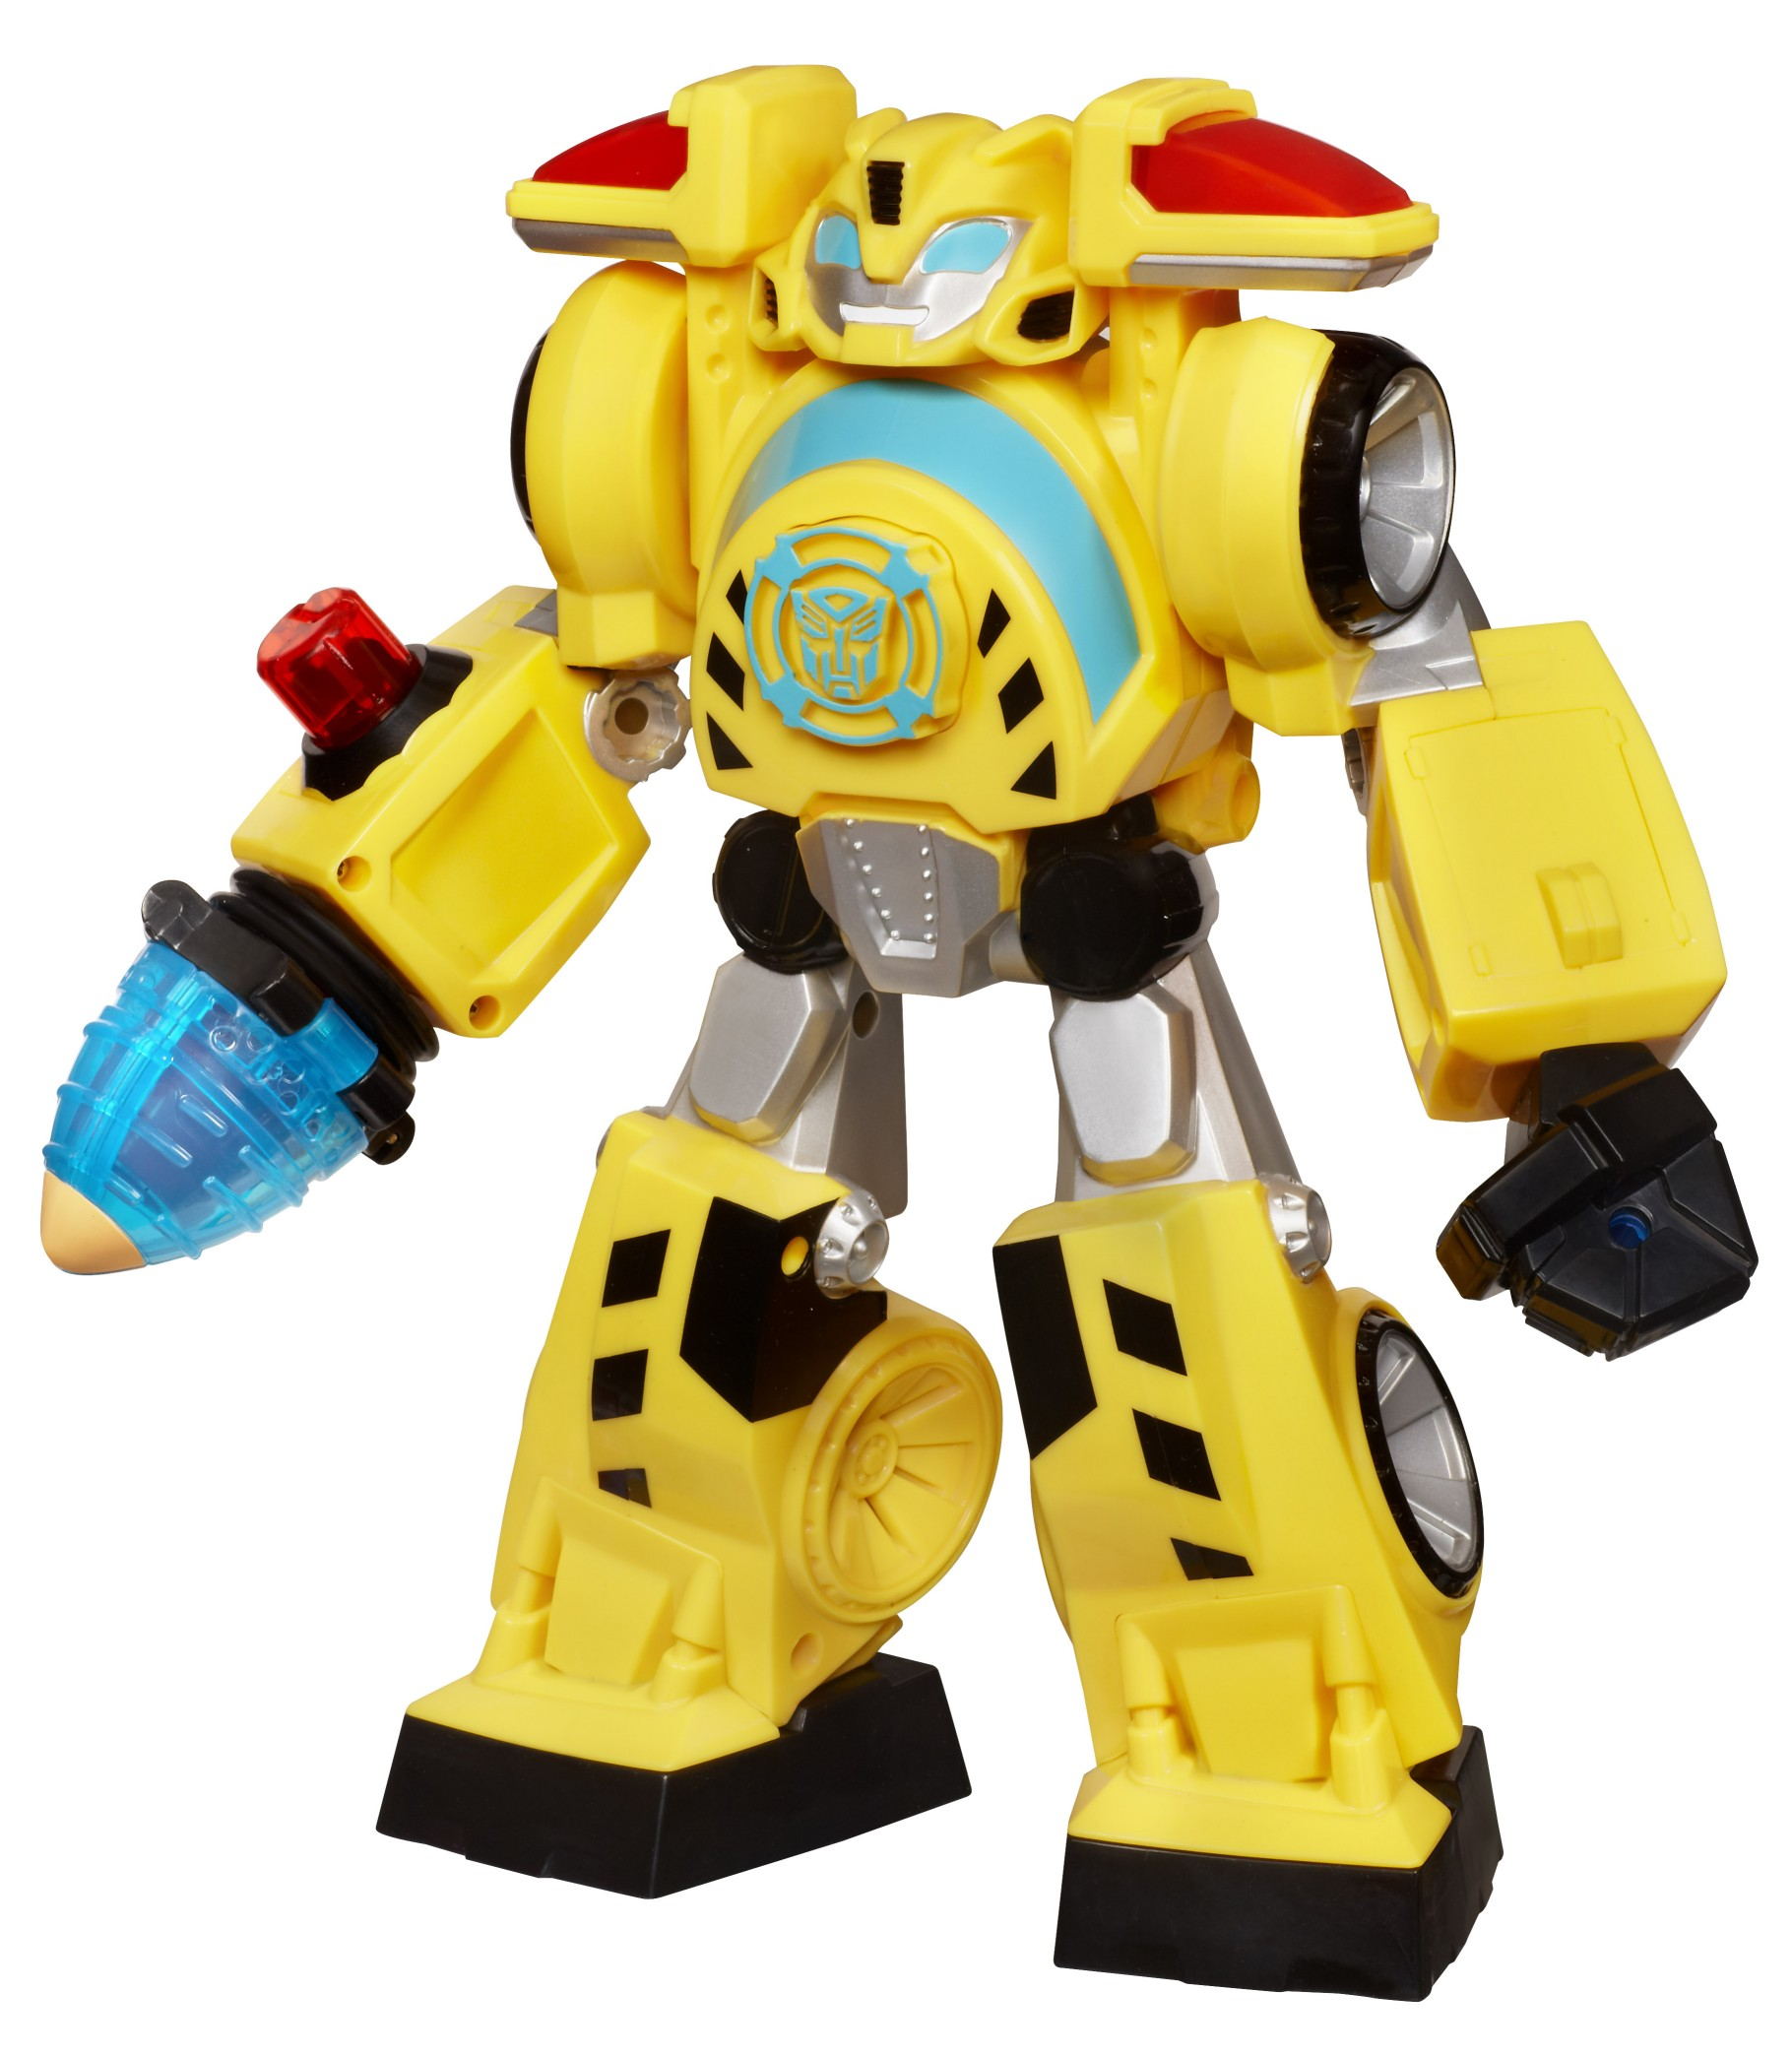 Rescue Bots Bumblebee Toy Transformers Rescue Bots Toy